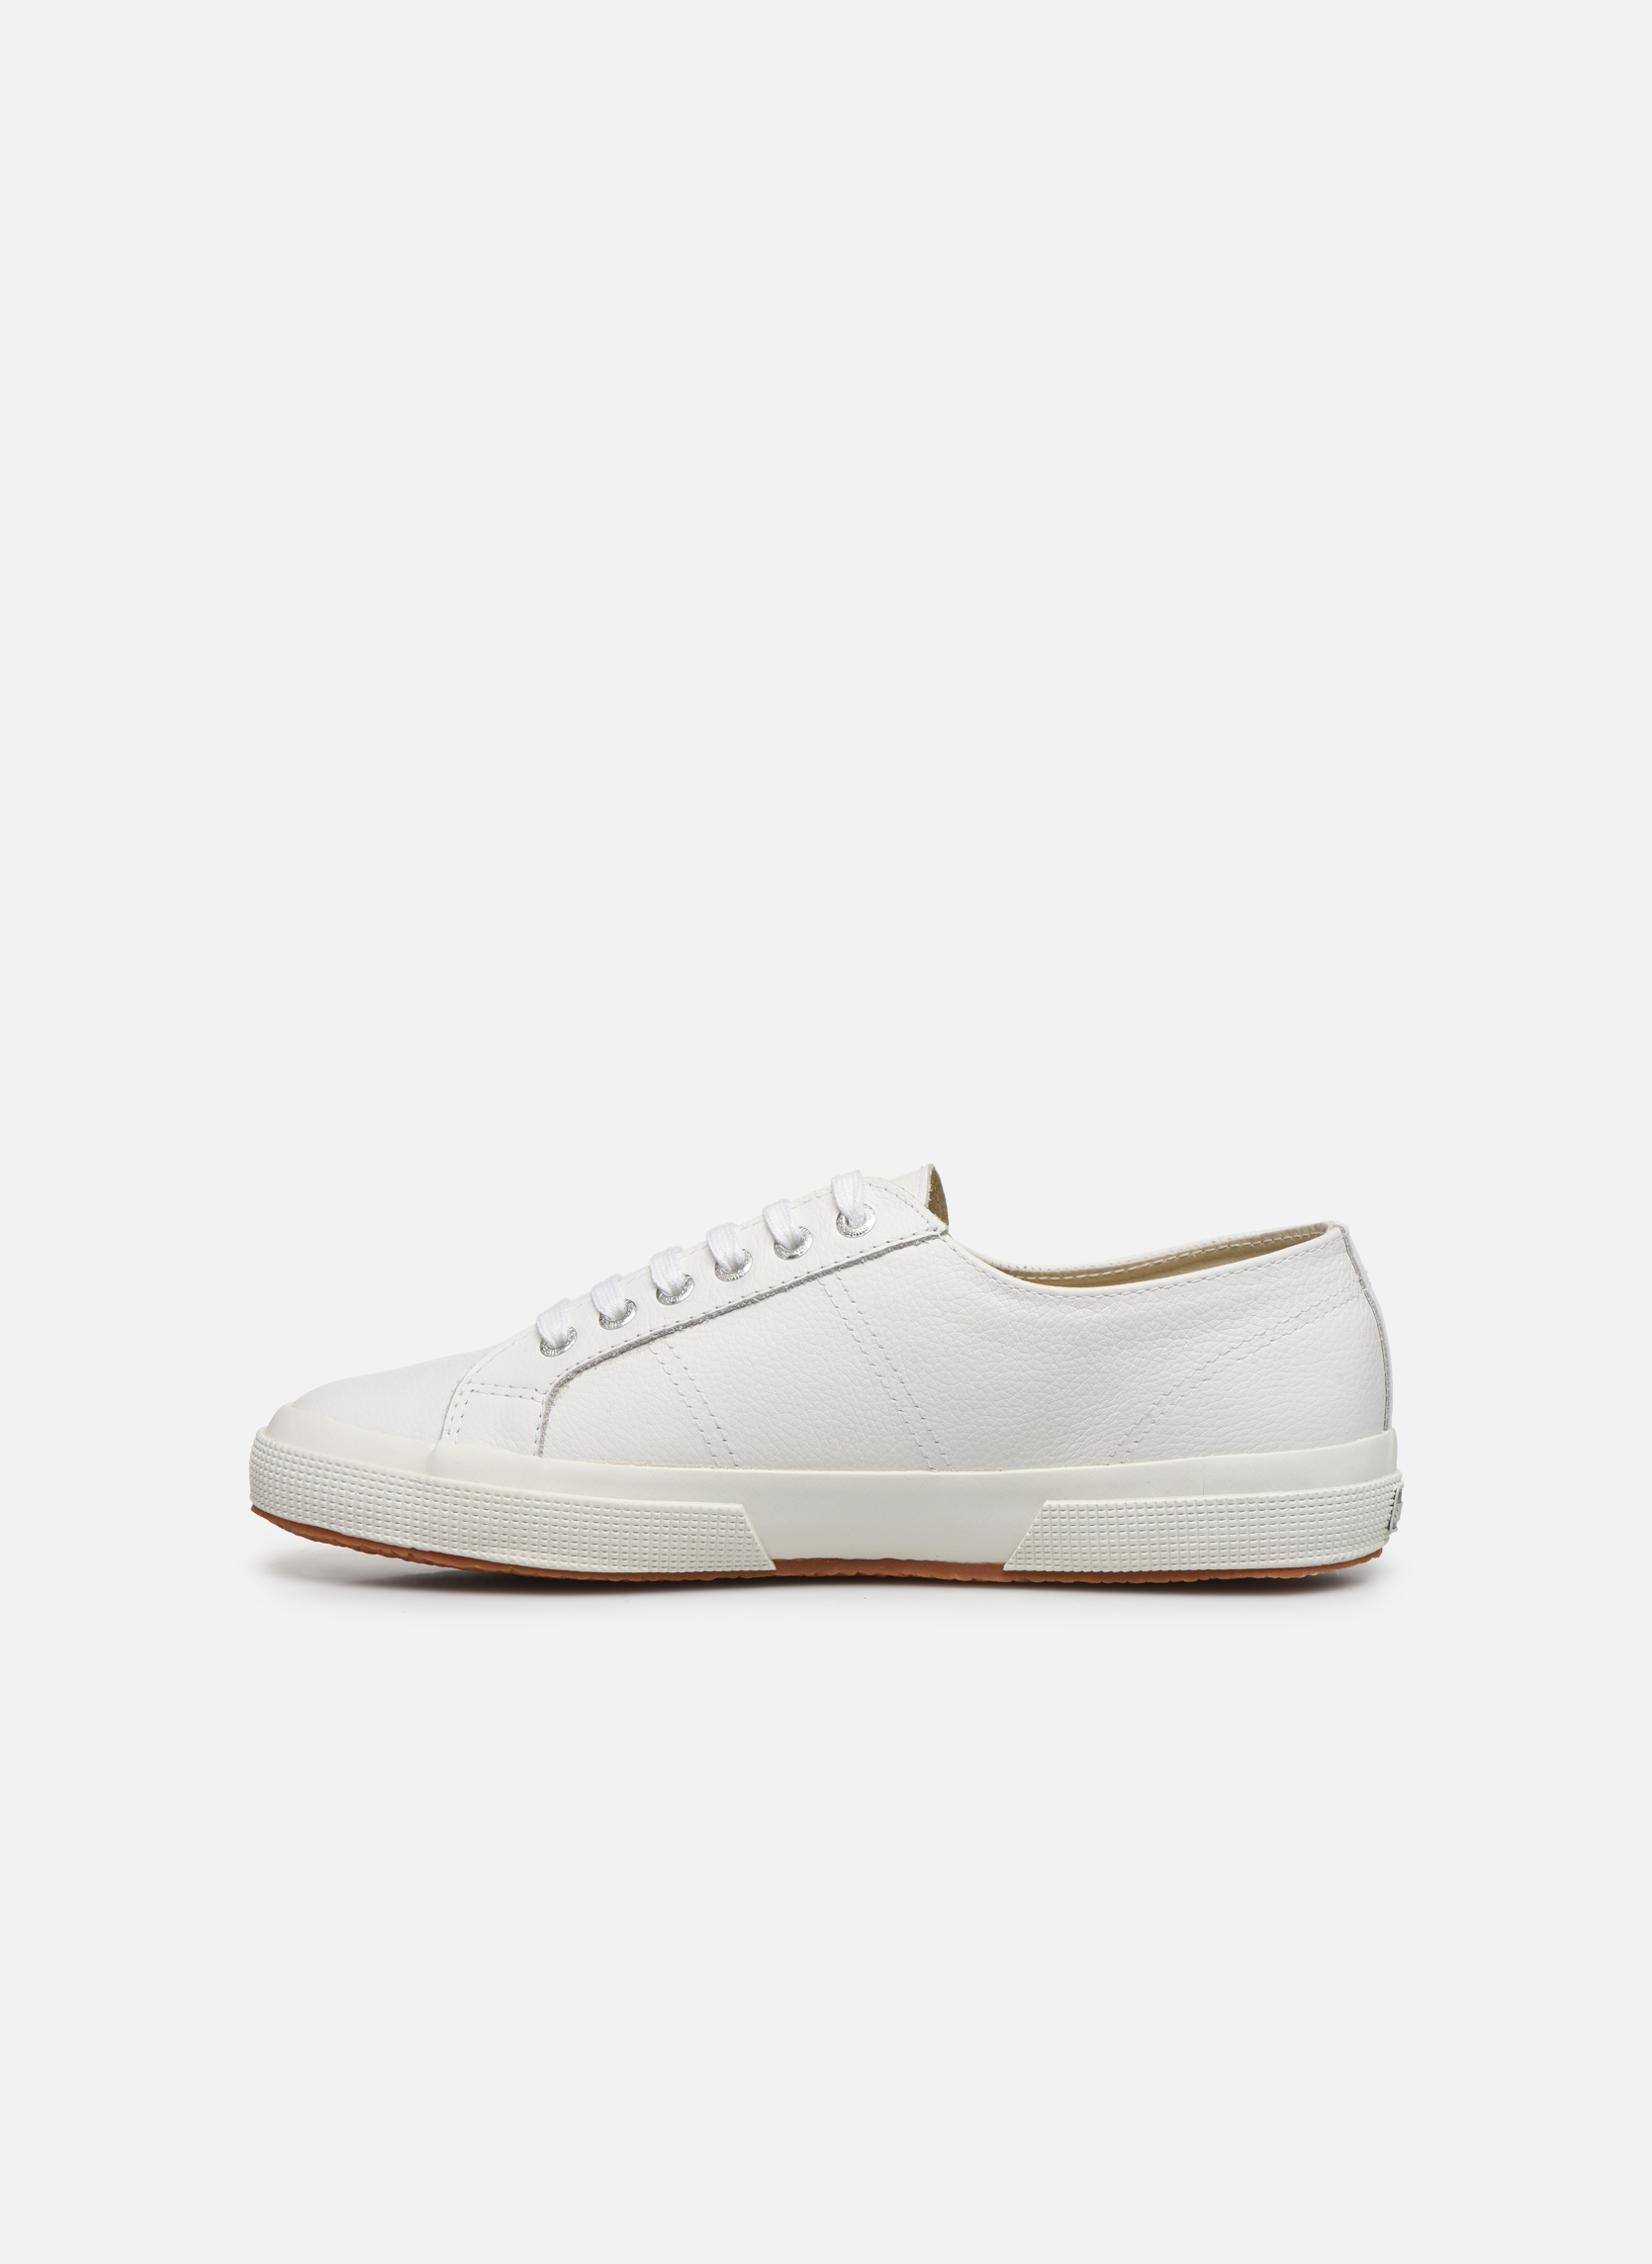 Trainers Superga 2750 FGLU White front view